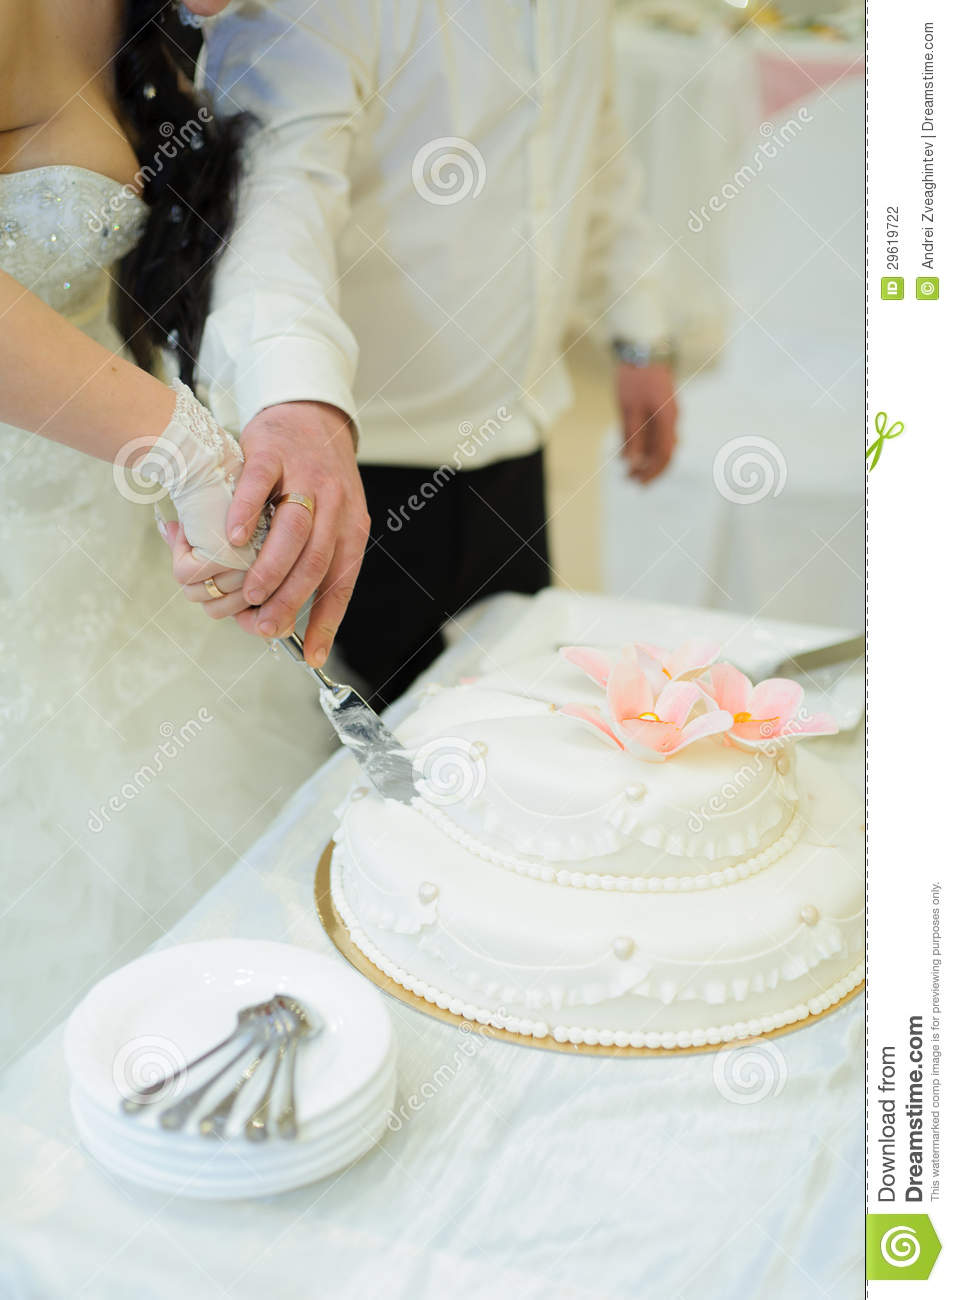 Cutting Cake Holding Hands Together